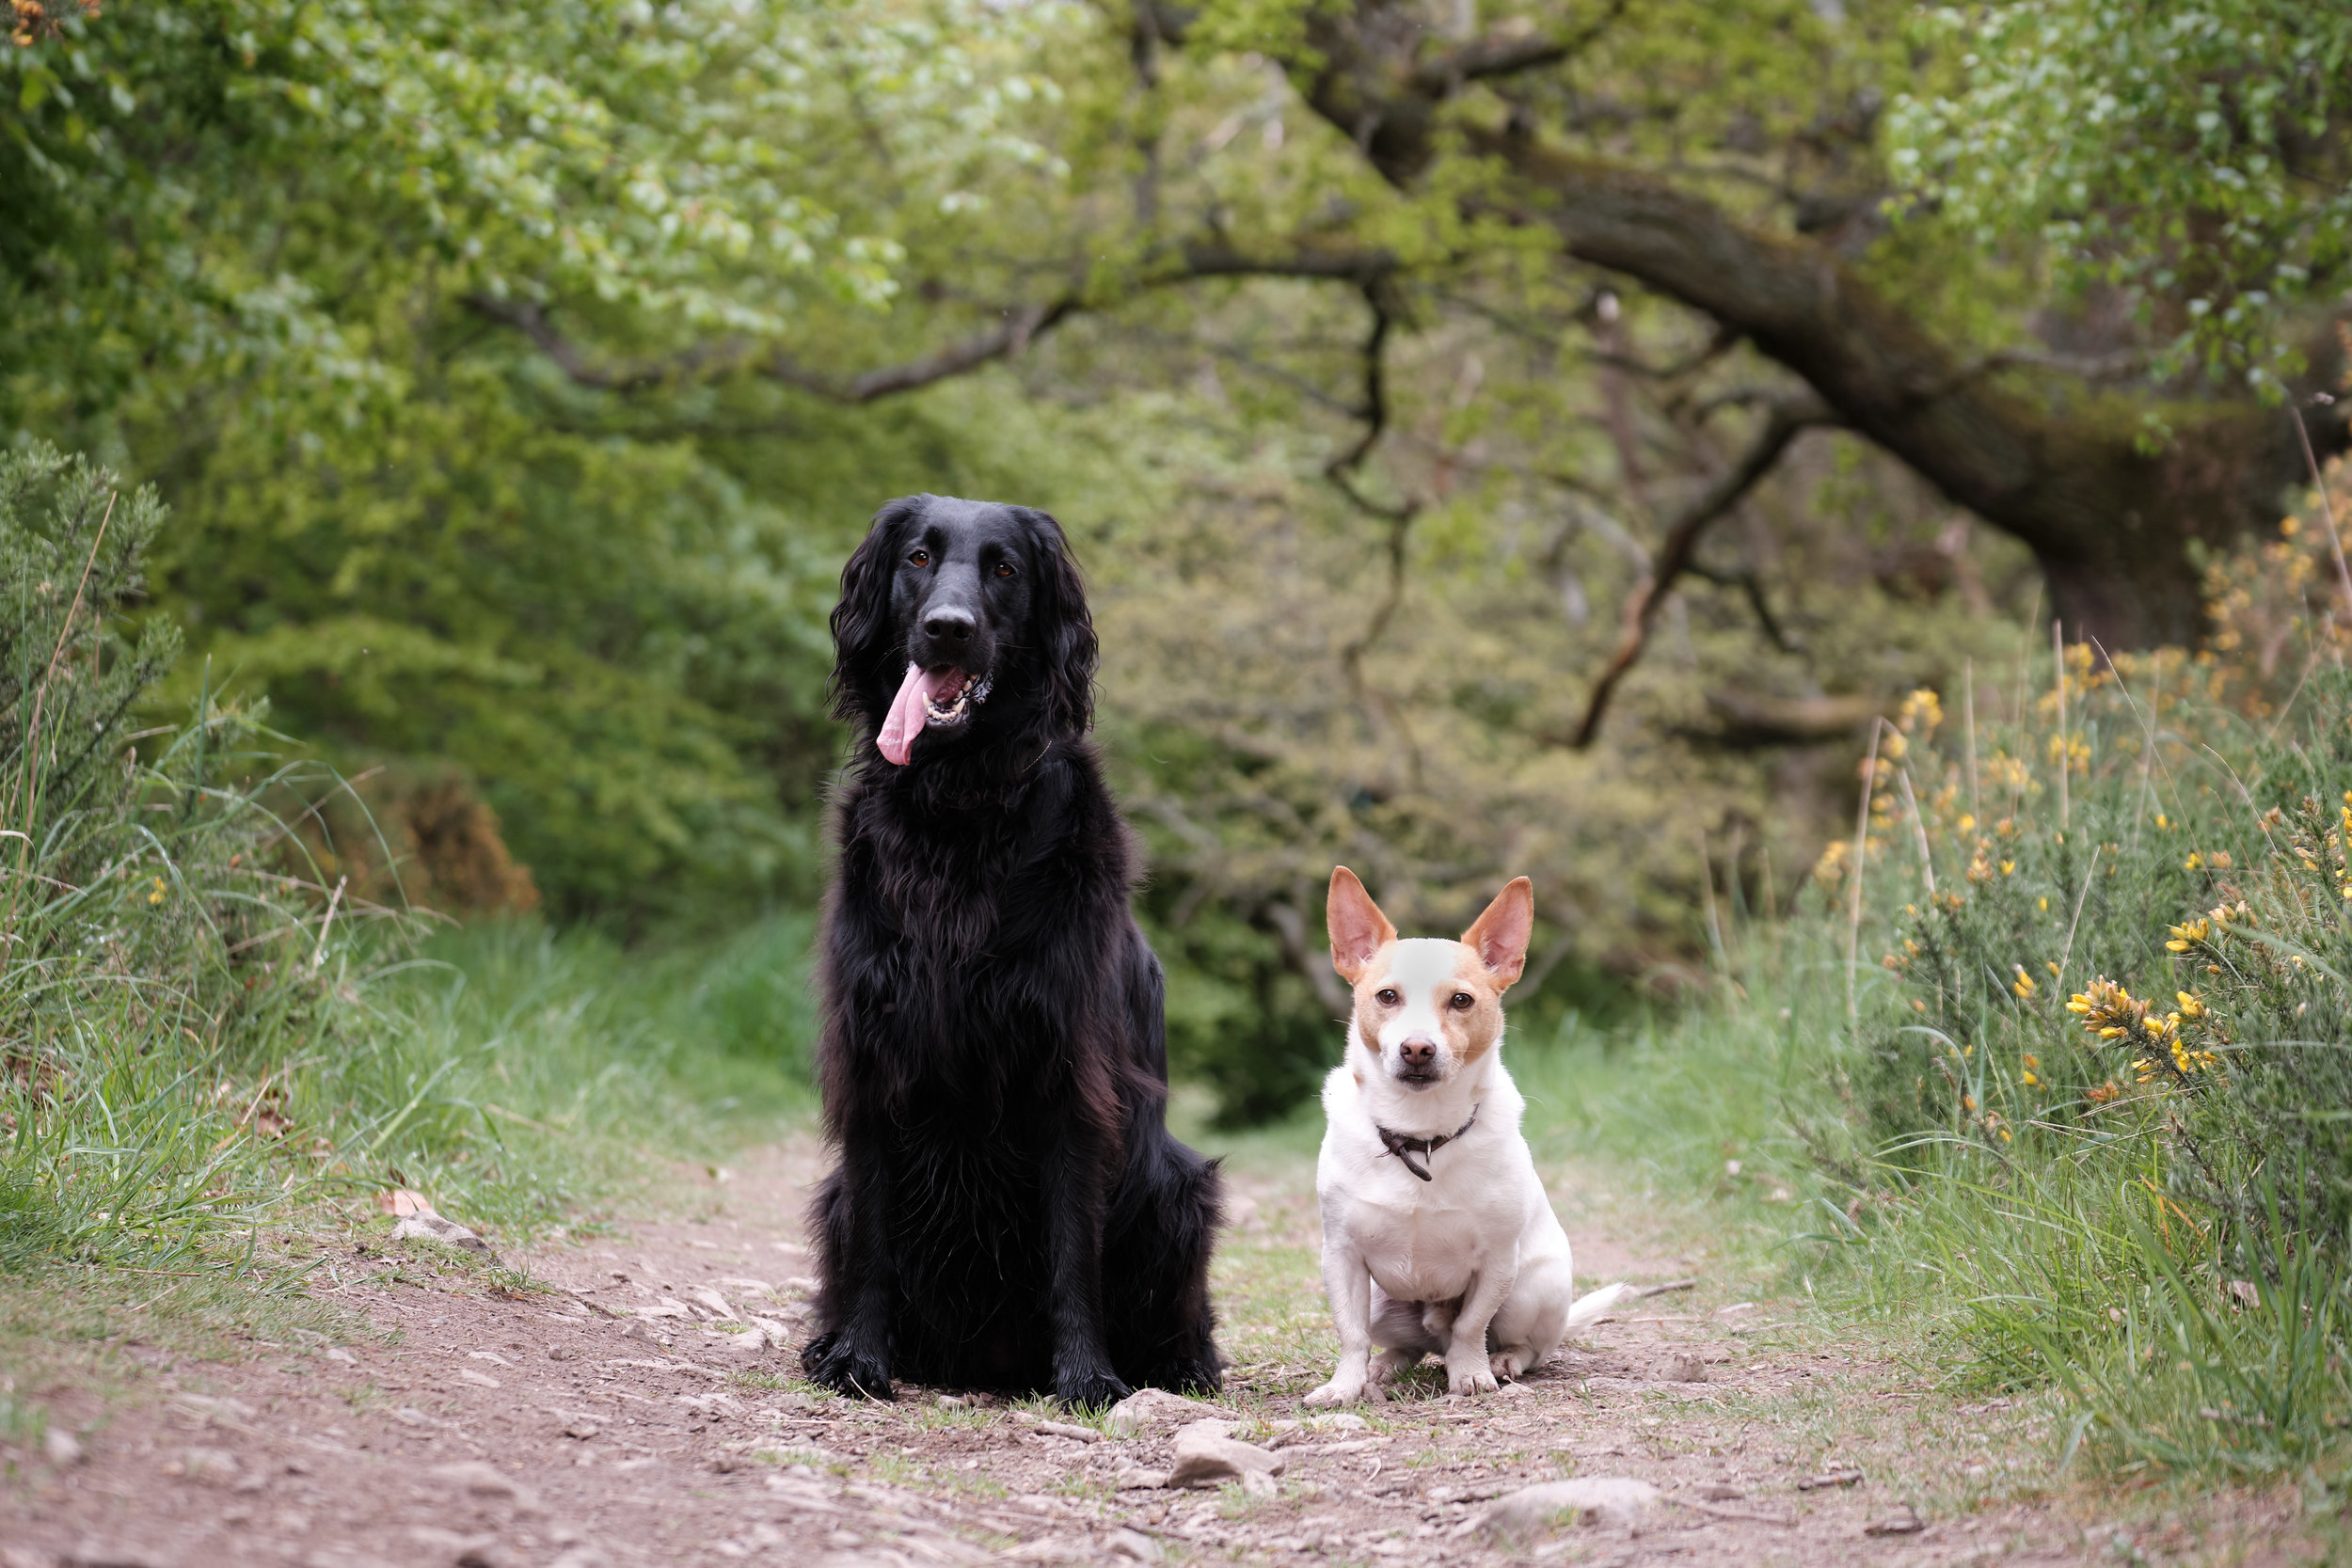 FredandMartha_FetchandFlash_EdinburghDogPhotographer 19.jpg